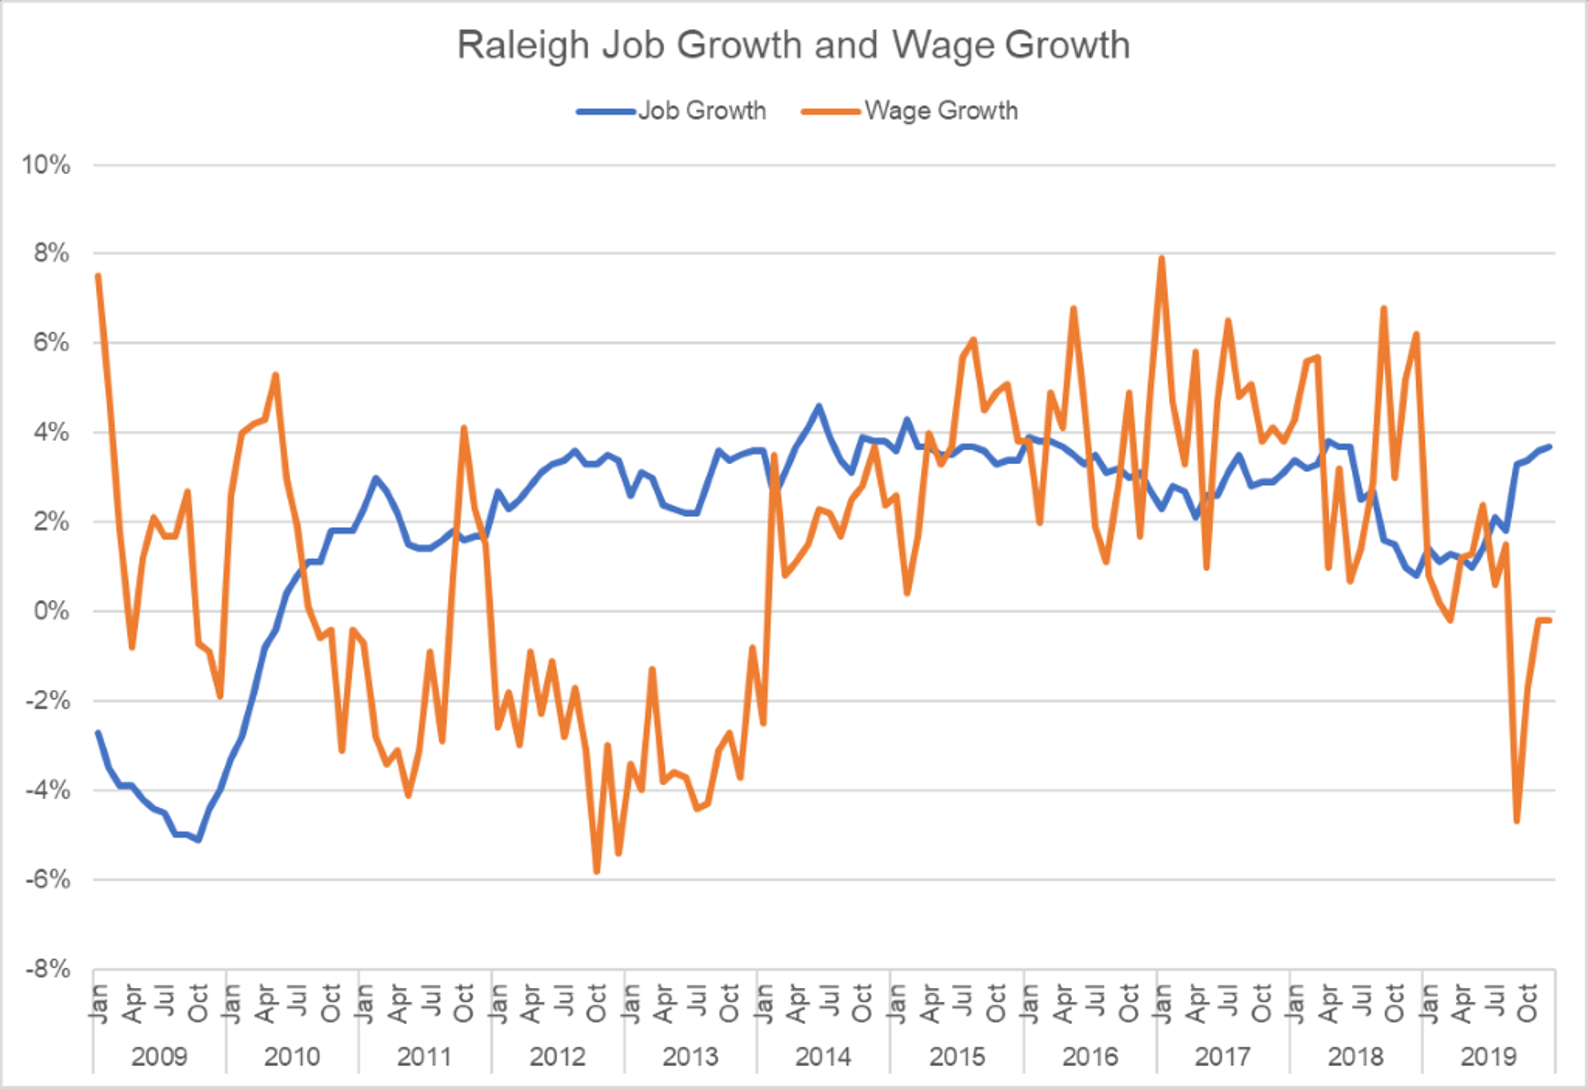 Raleigh job growth and wage growth